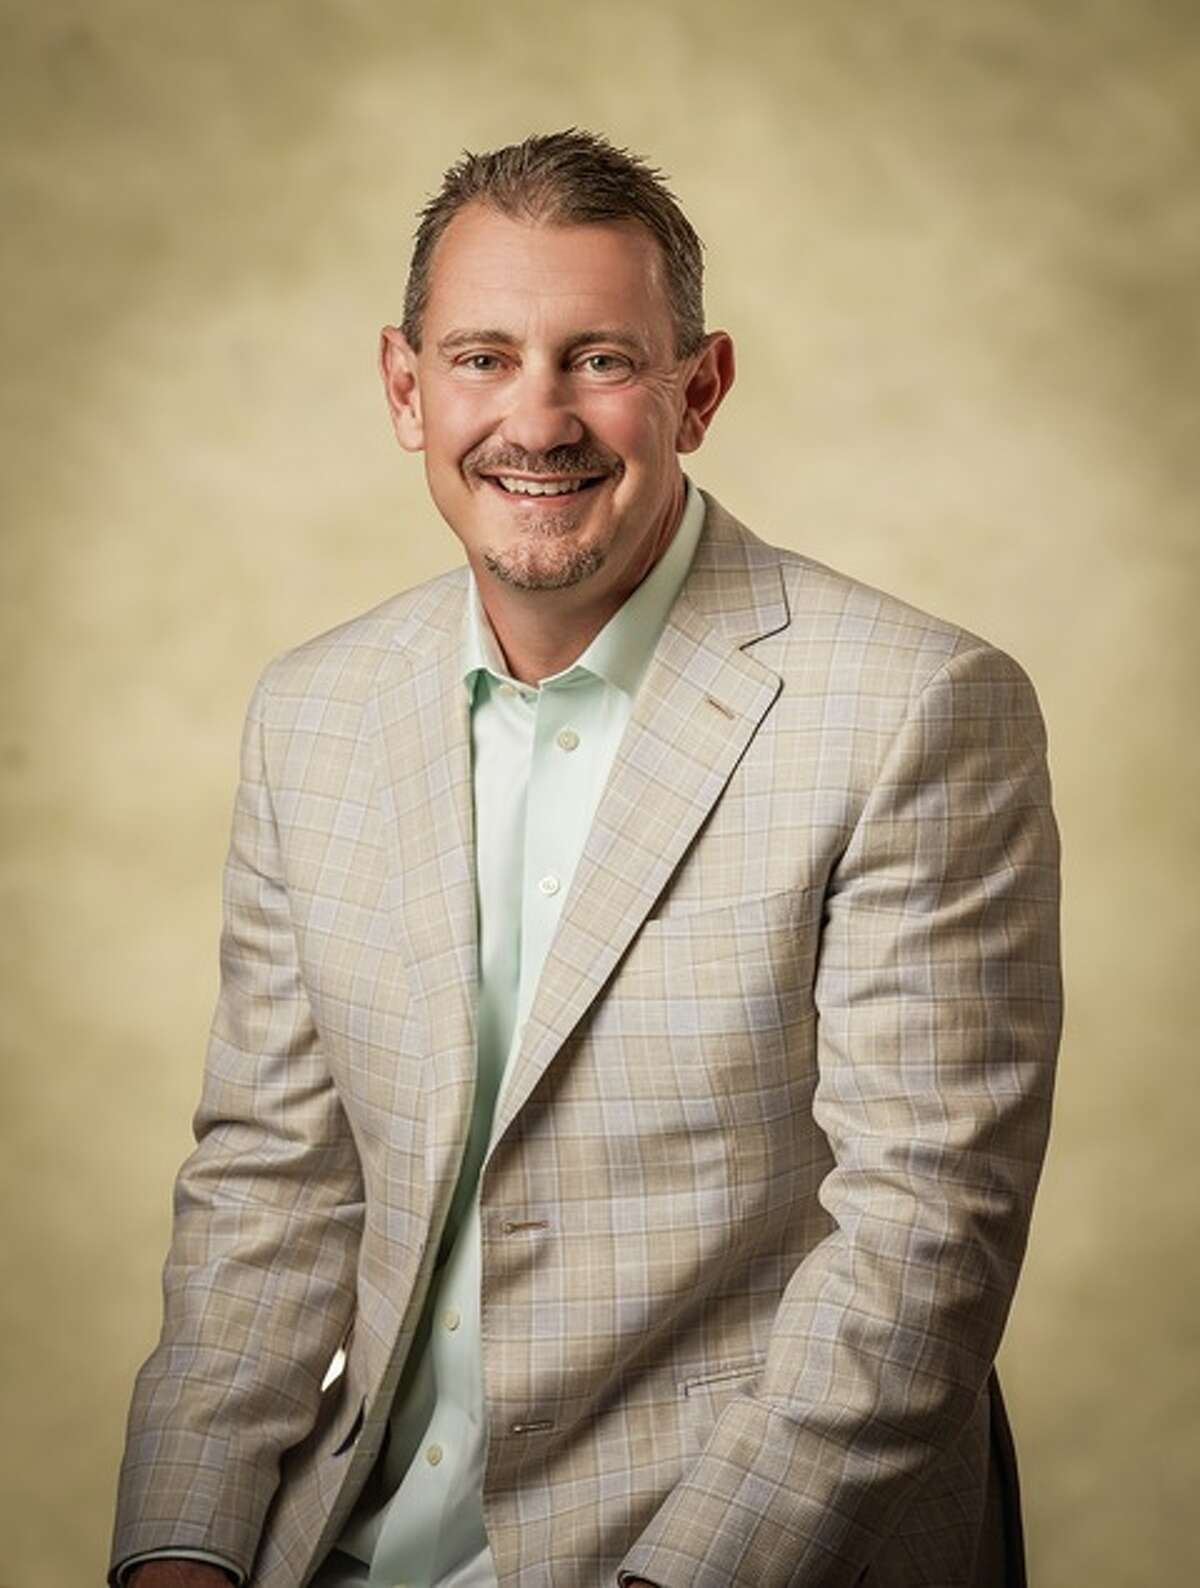 Dr. William Hayes specializes in treating conditions of the shoulder and knee. He is the founder and senior partner at Sterling Ridge Orthopaedics and Sports Medicine PLLC.